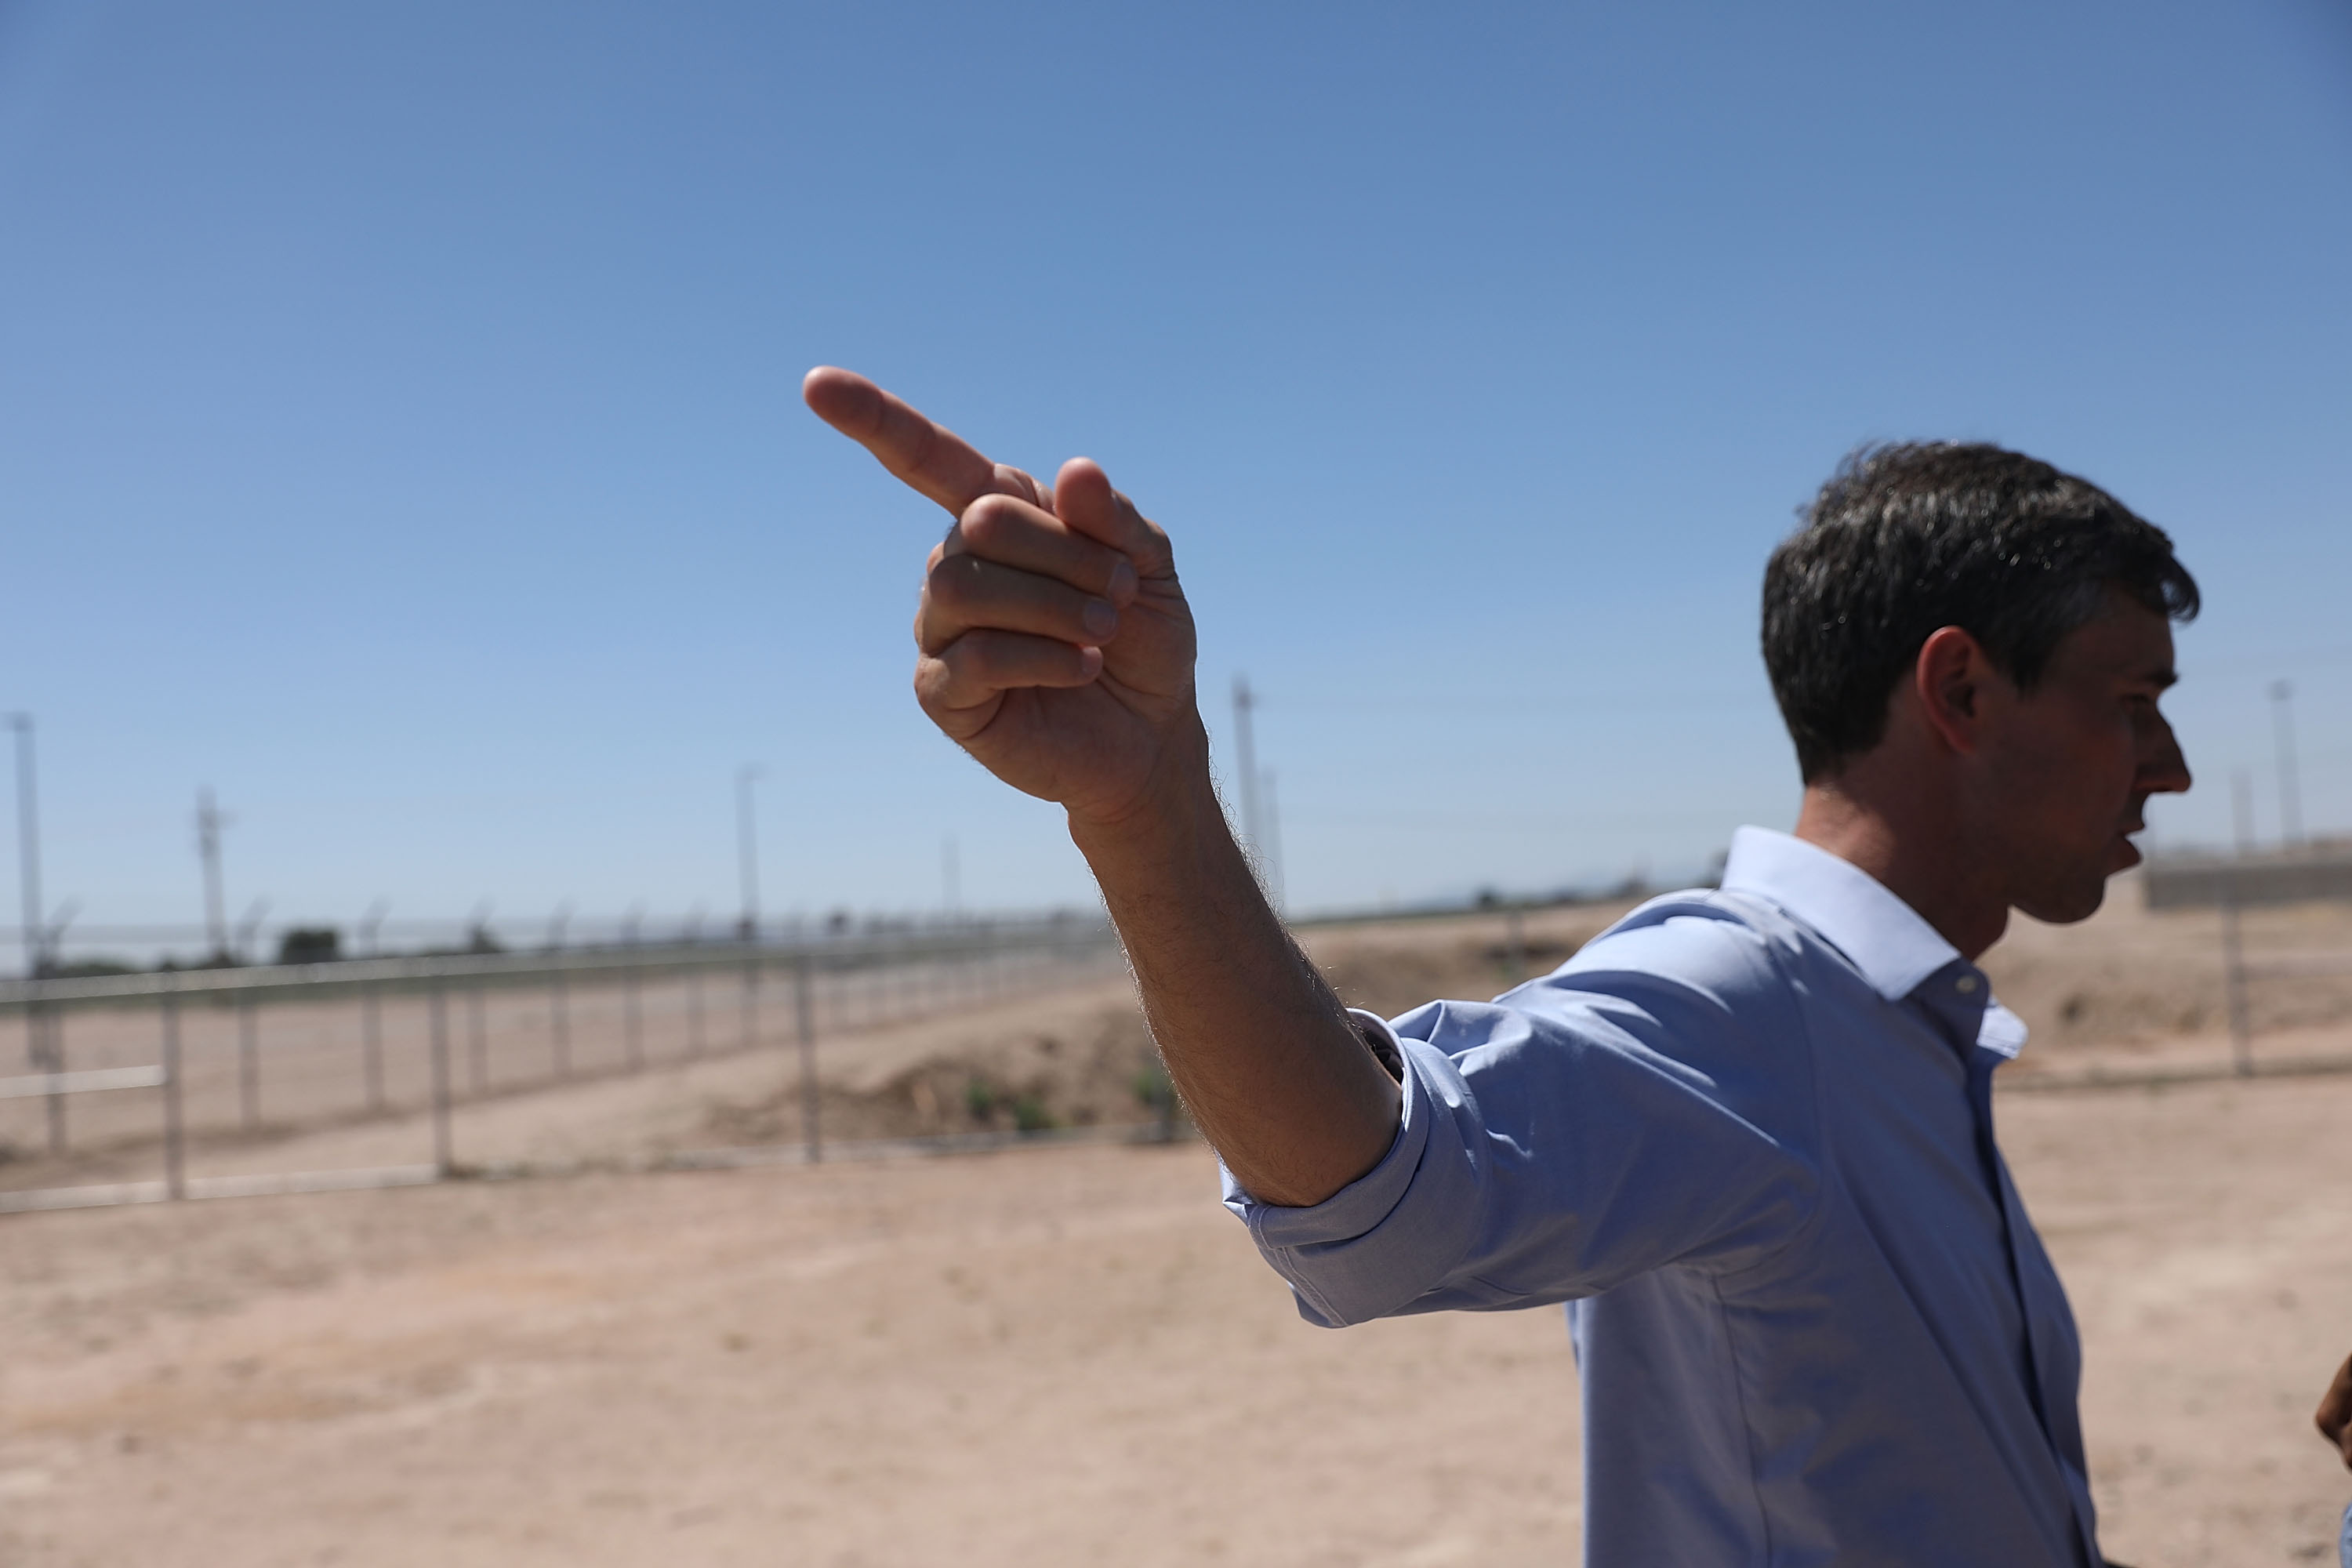 Rep. Beto O'Rourke points toward the tent encampment he toured near the Tornillo-Guadalupe Port of Entry on June 23, 2018. (Joe Raedle/Getty Images)